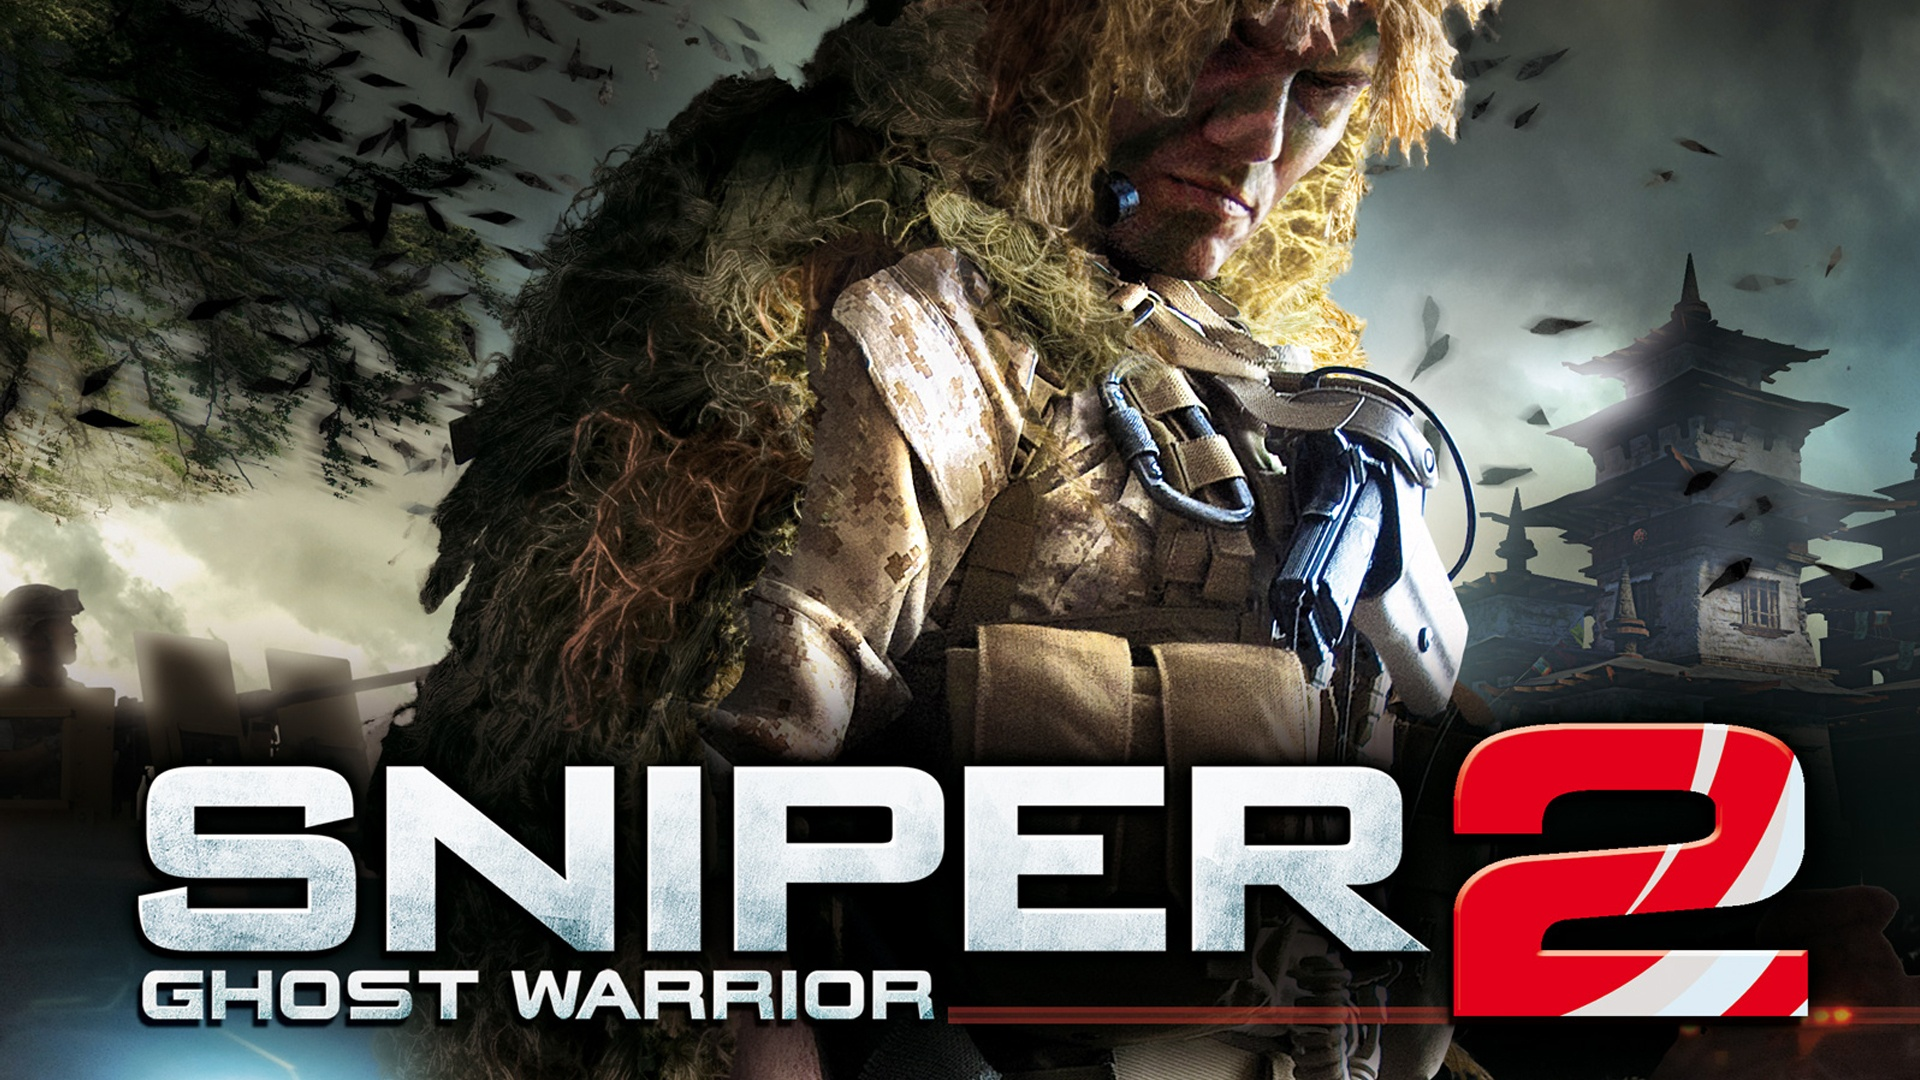 Sniper: Ghost Warrior 2 wallpaper - 1920x1080